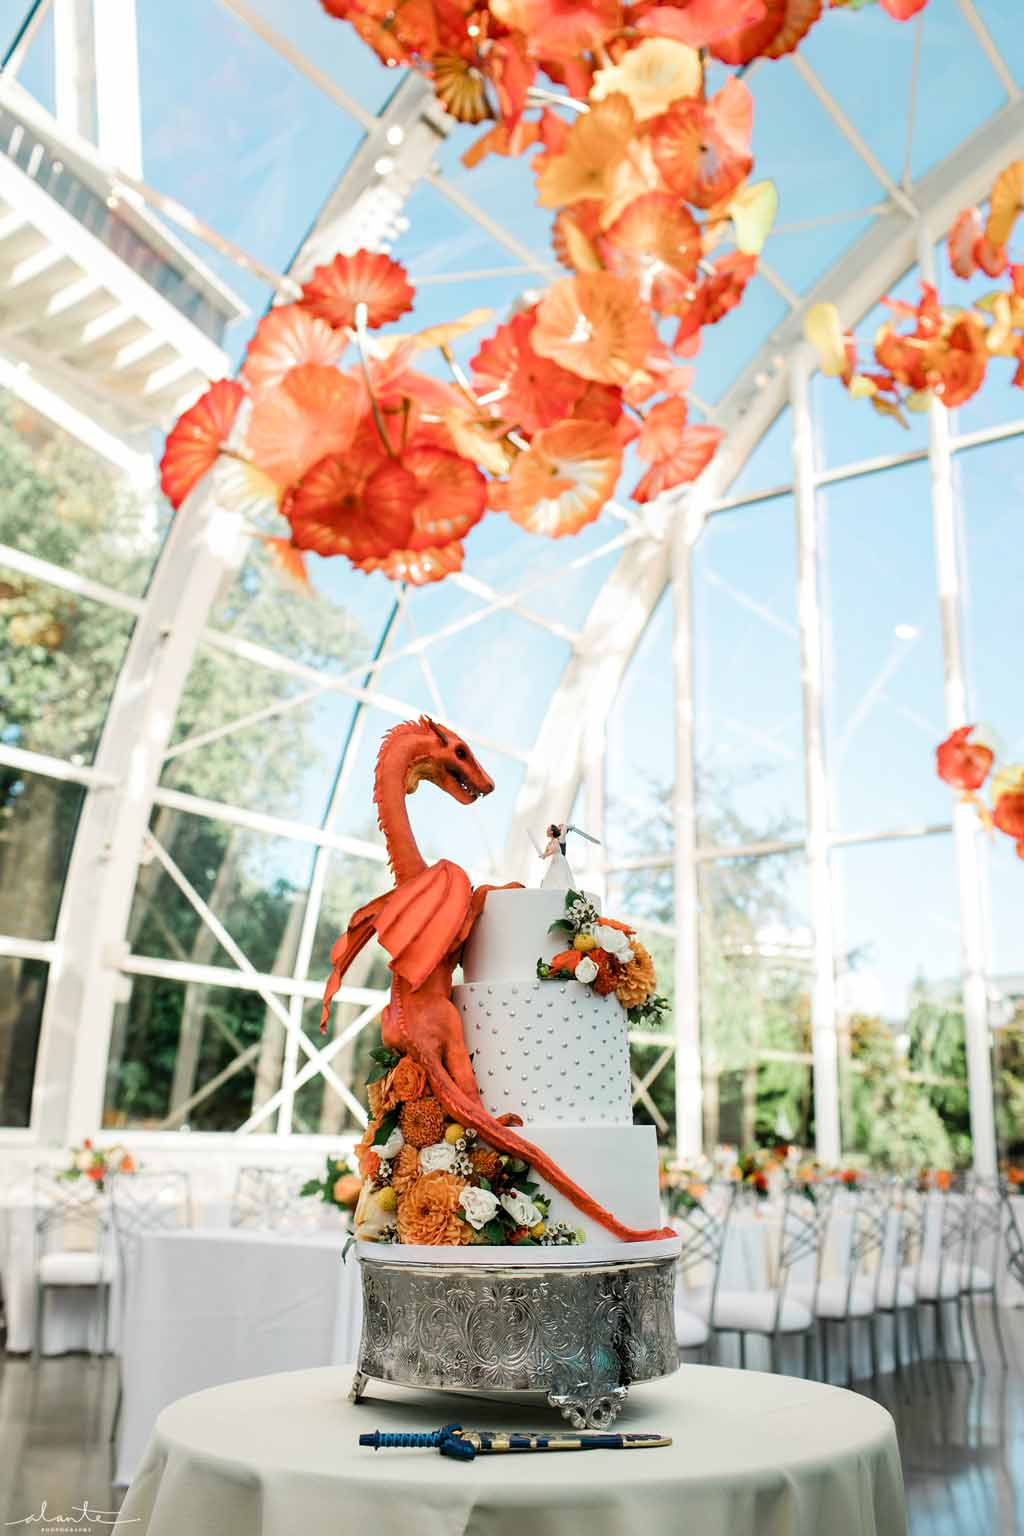 Orange dragon fantasy wedding cake with peach and orange flowers at Chihuly Glass House | Flora Nova Design Seattle